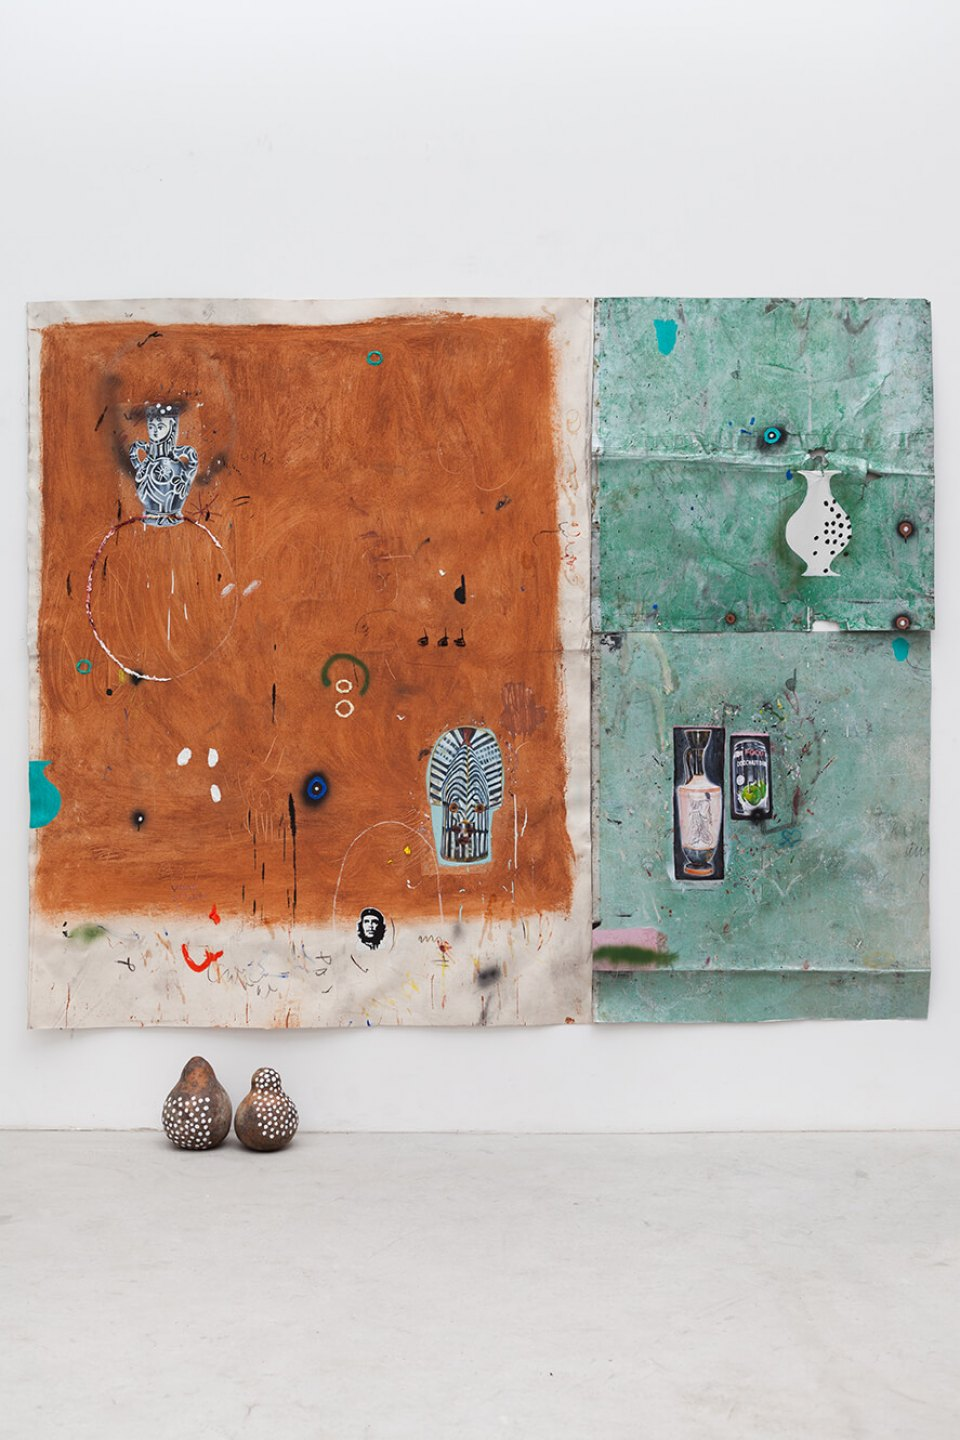 Paulo Nimer Pjota,<em>rammed earth facade part. II, lot of things,</em>2015, acrylic, oil, pencil, pen, charcoal, pastel and pigment on canvas, aluminum plate and gourd, 252×262,5×26 cm - Mendes Wood DM